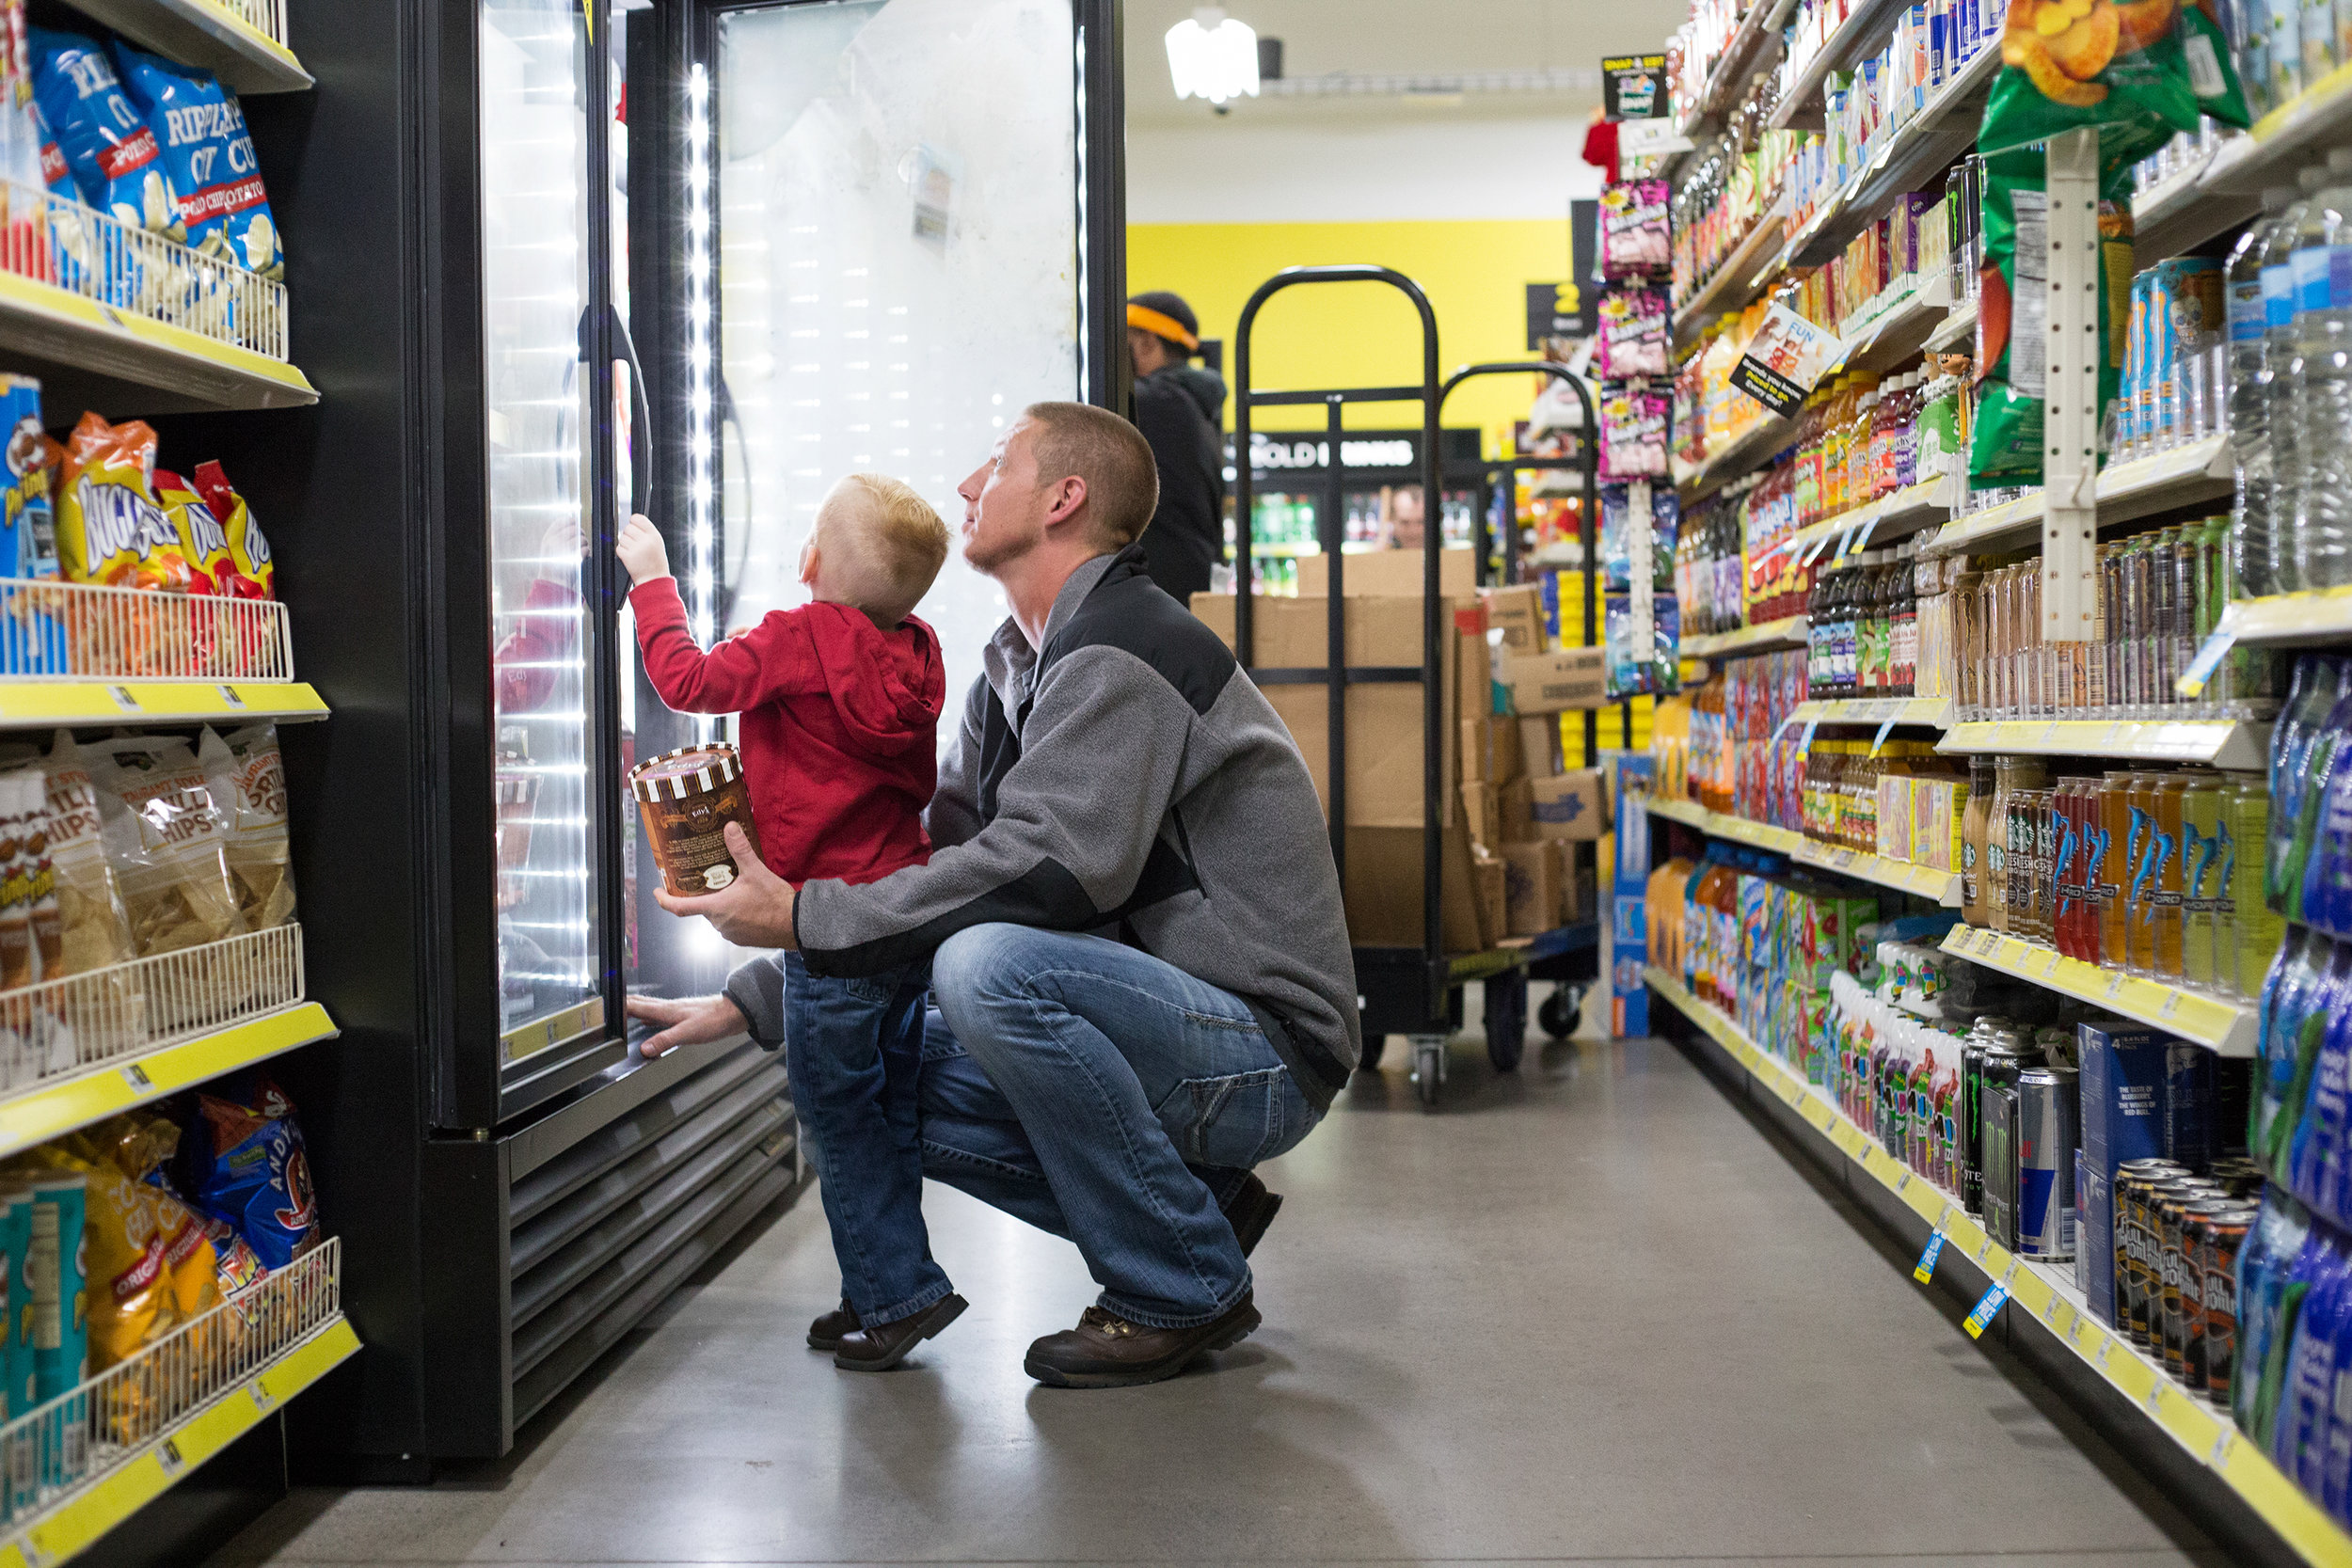 Dalton Cranfield, 3, and his father David Cranfield decide which flavor of ice cream they will purchase at Dollar General in Evensville, Tenn. Thursday, Nov. 16 2017. David said they don't shop at the store often, but when they do it is for the convenience.